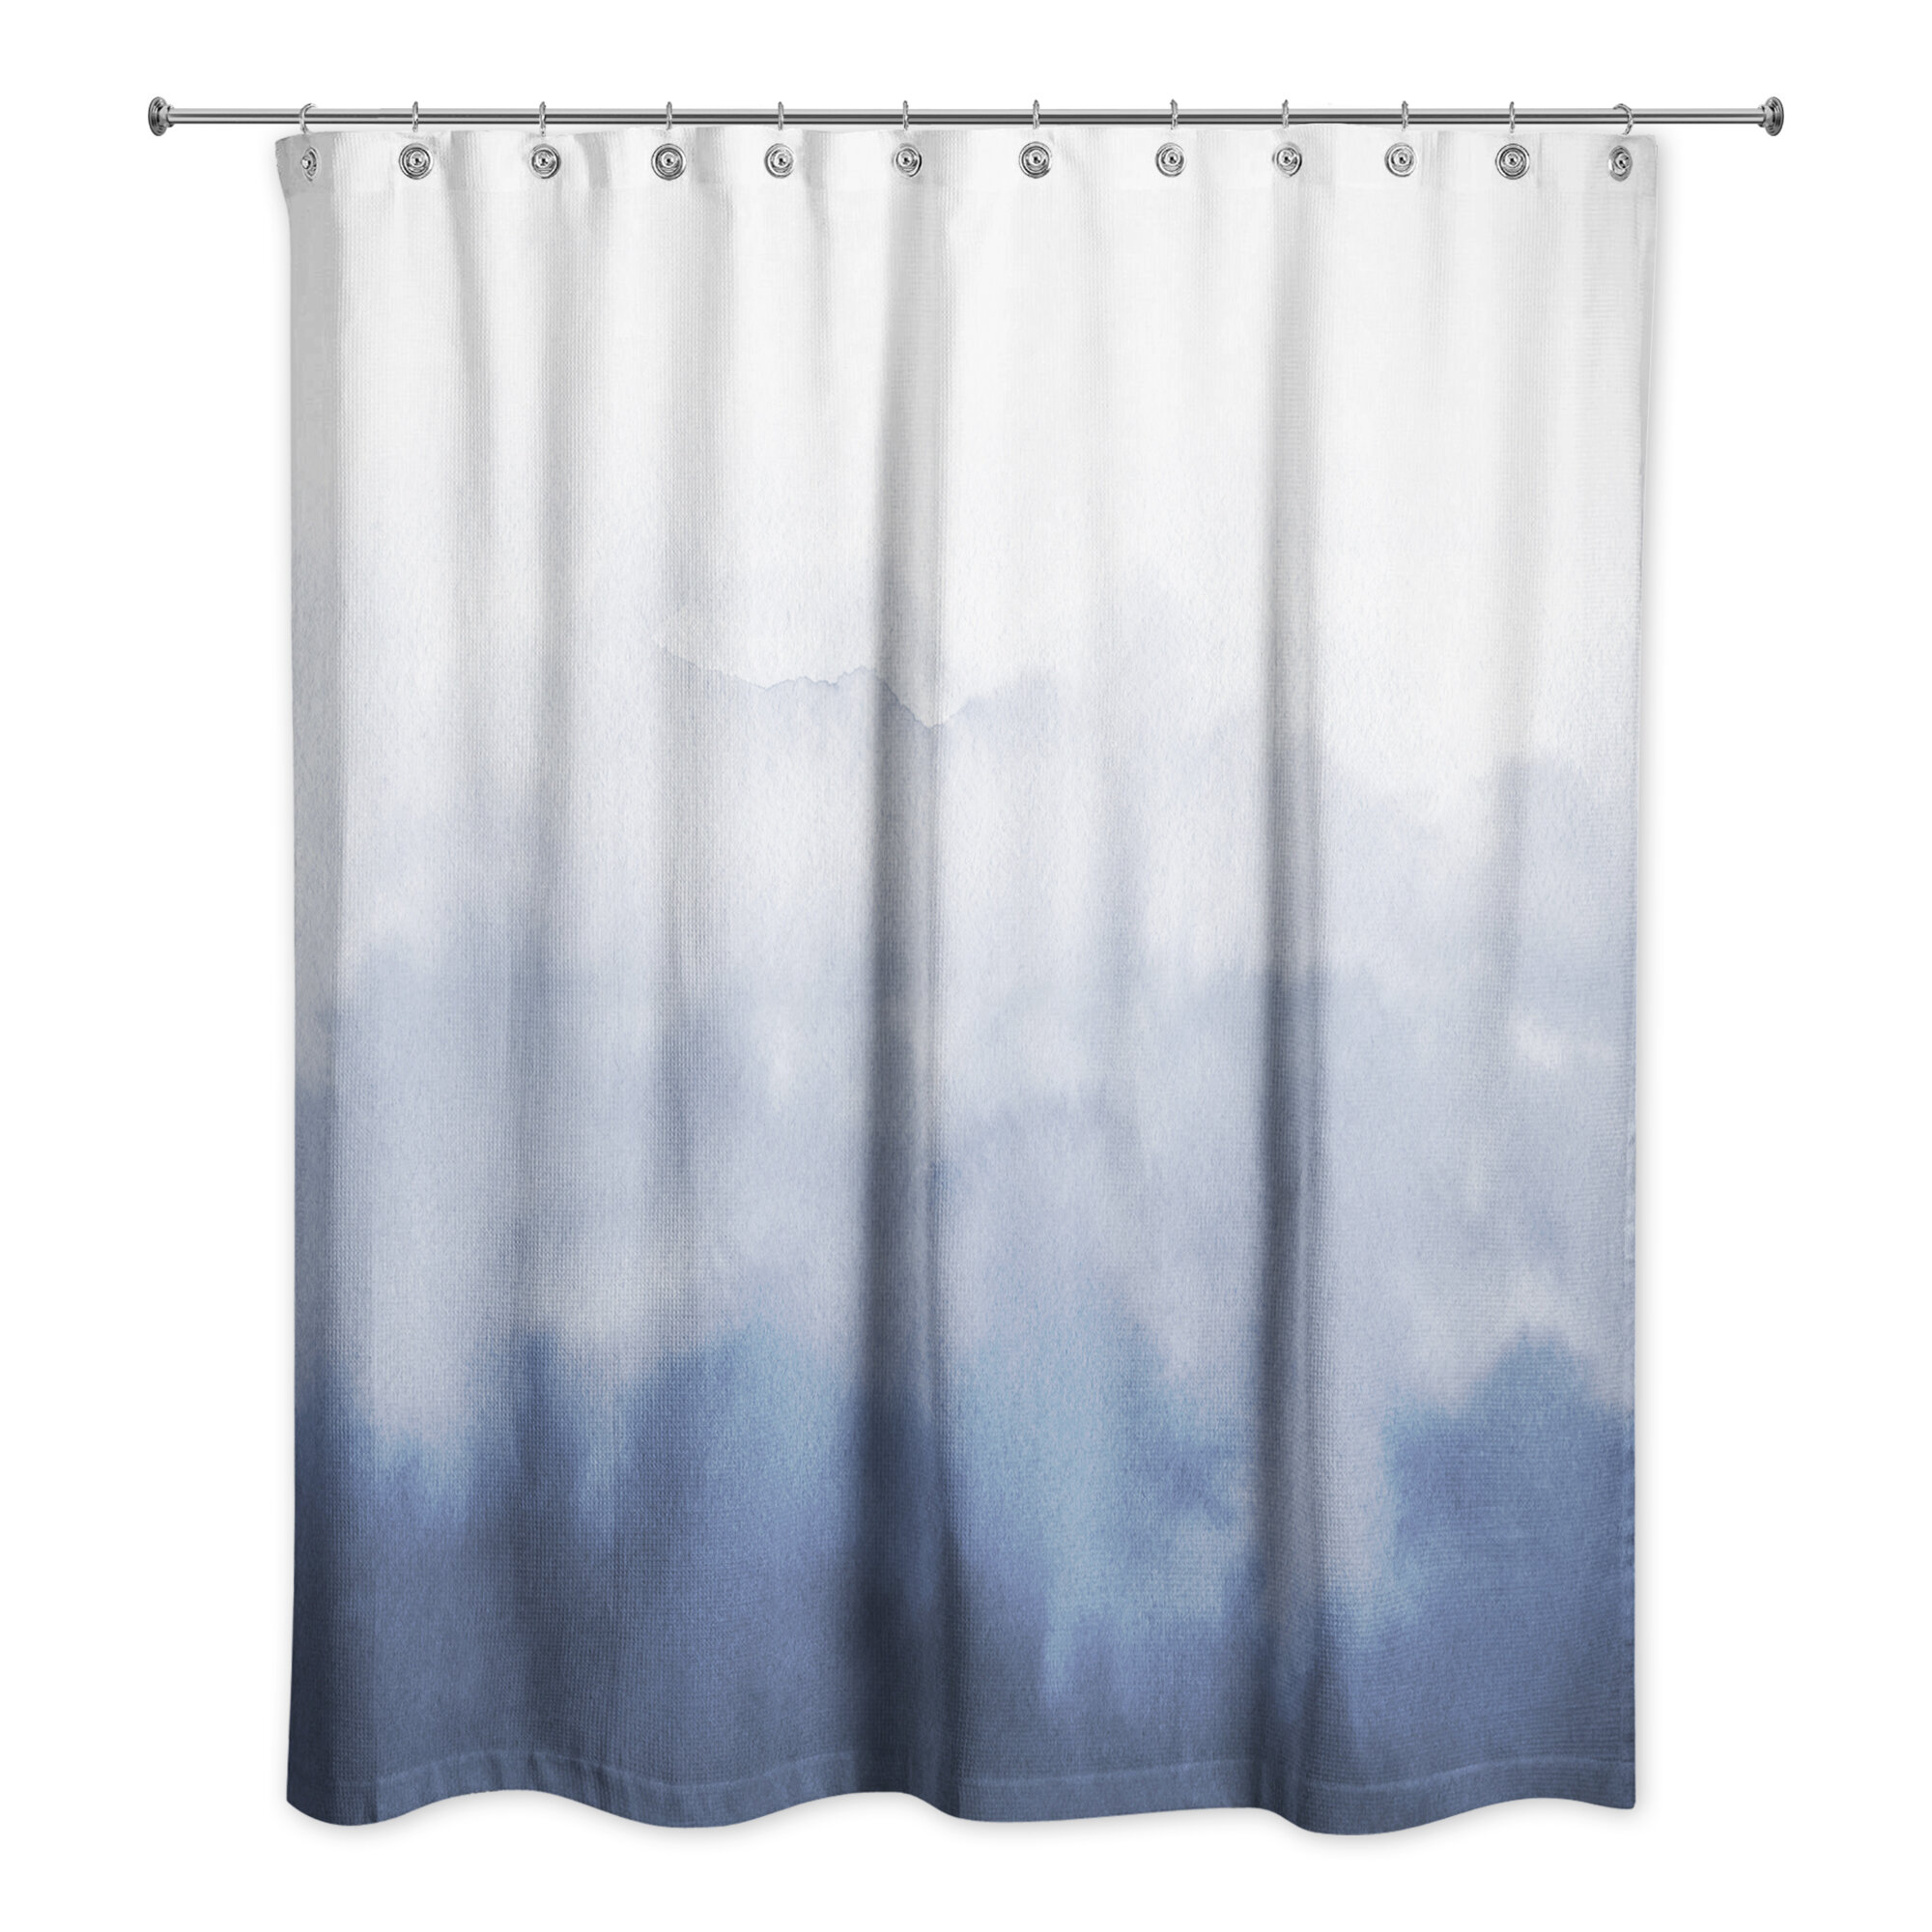 Marble Material Shower Curtain Liner Bathroom Mat Set Watercolor Fabric Hooks